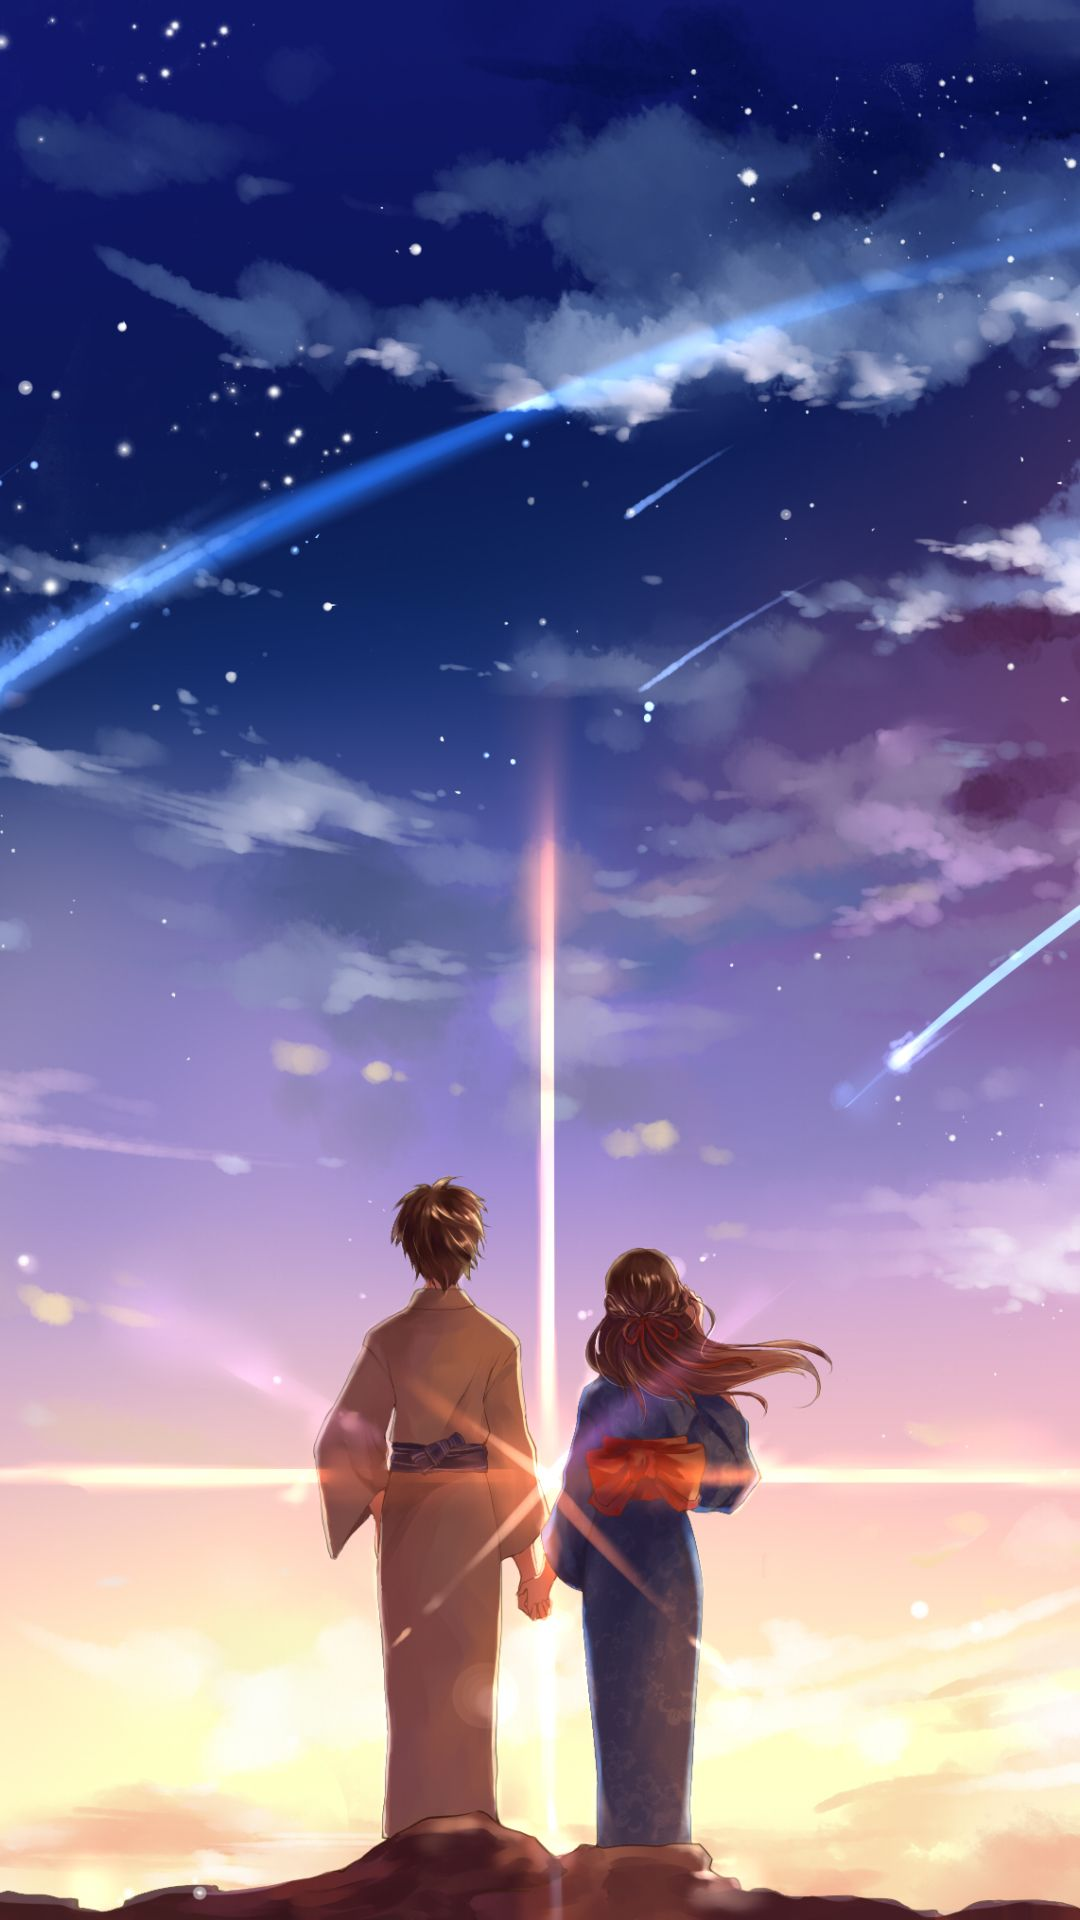 2400x1824 Anime Your Name Kimi No Na Wa Mitsuha Miyamizu Taki Tachibana Wallpaper Your Name Anime Kimi No Na Wa Wallpaper Kimi No Na Wa